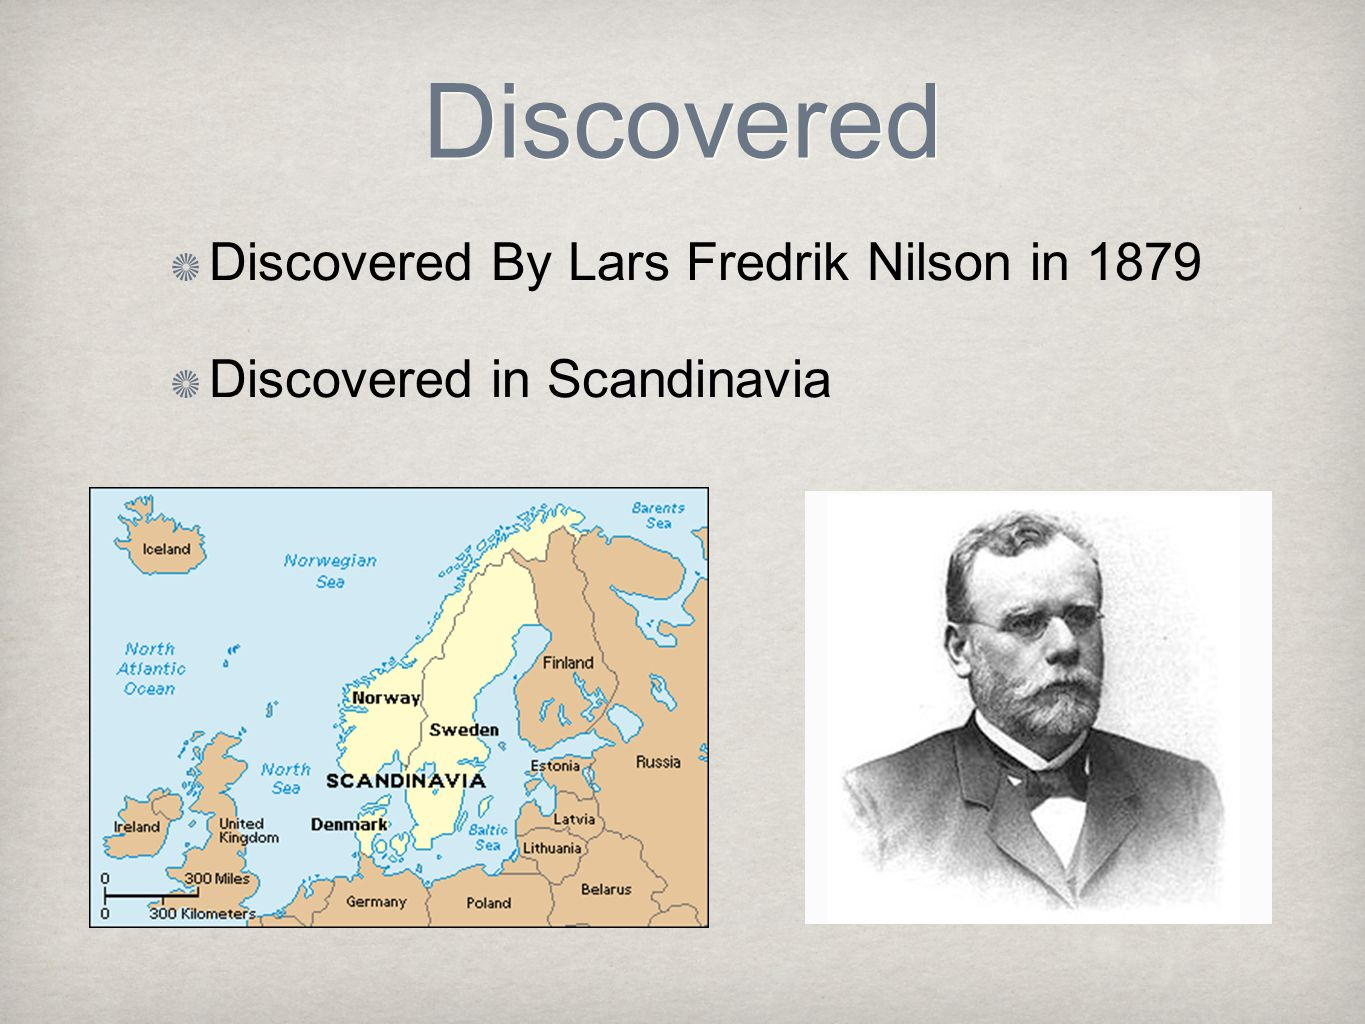 Discovered Discovered By Lars Fredrik Nilson in 1879